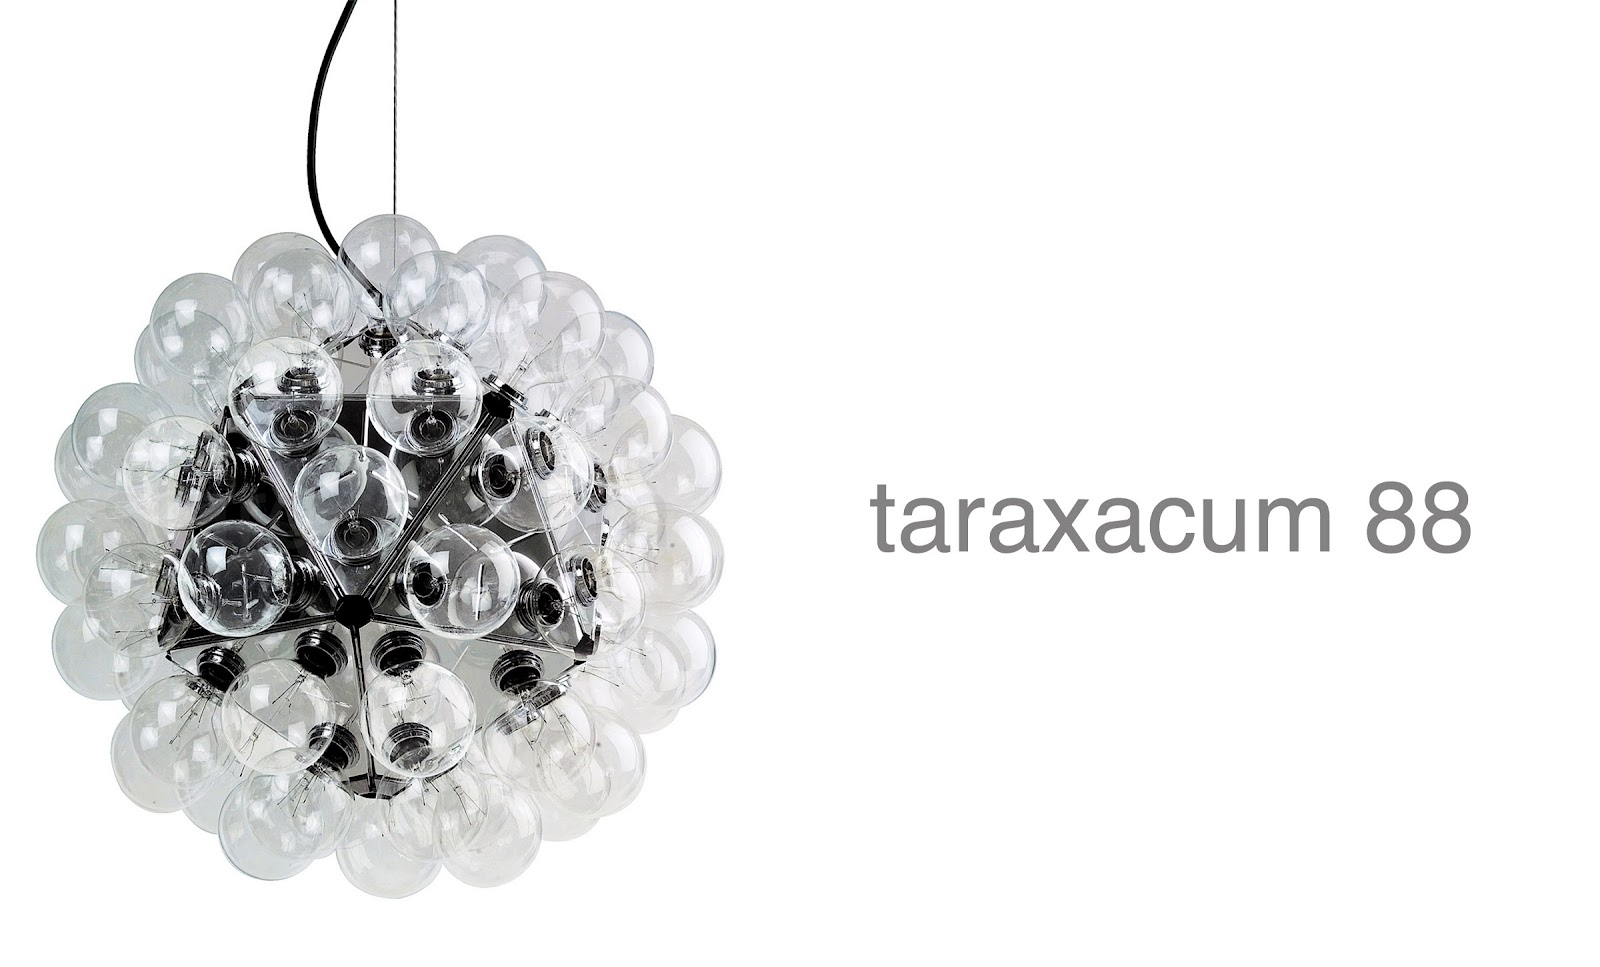 modern interior design: TARAXACUM-88 by FLOS